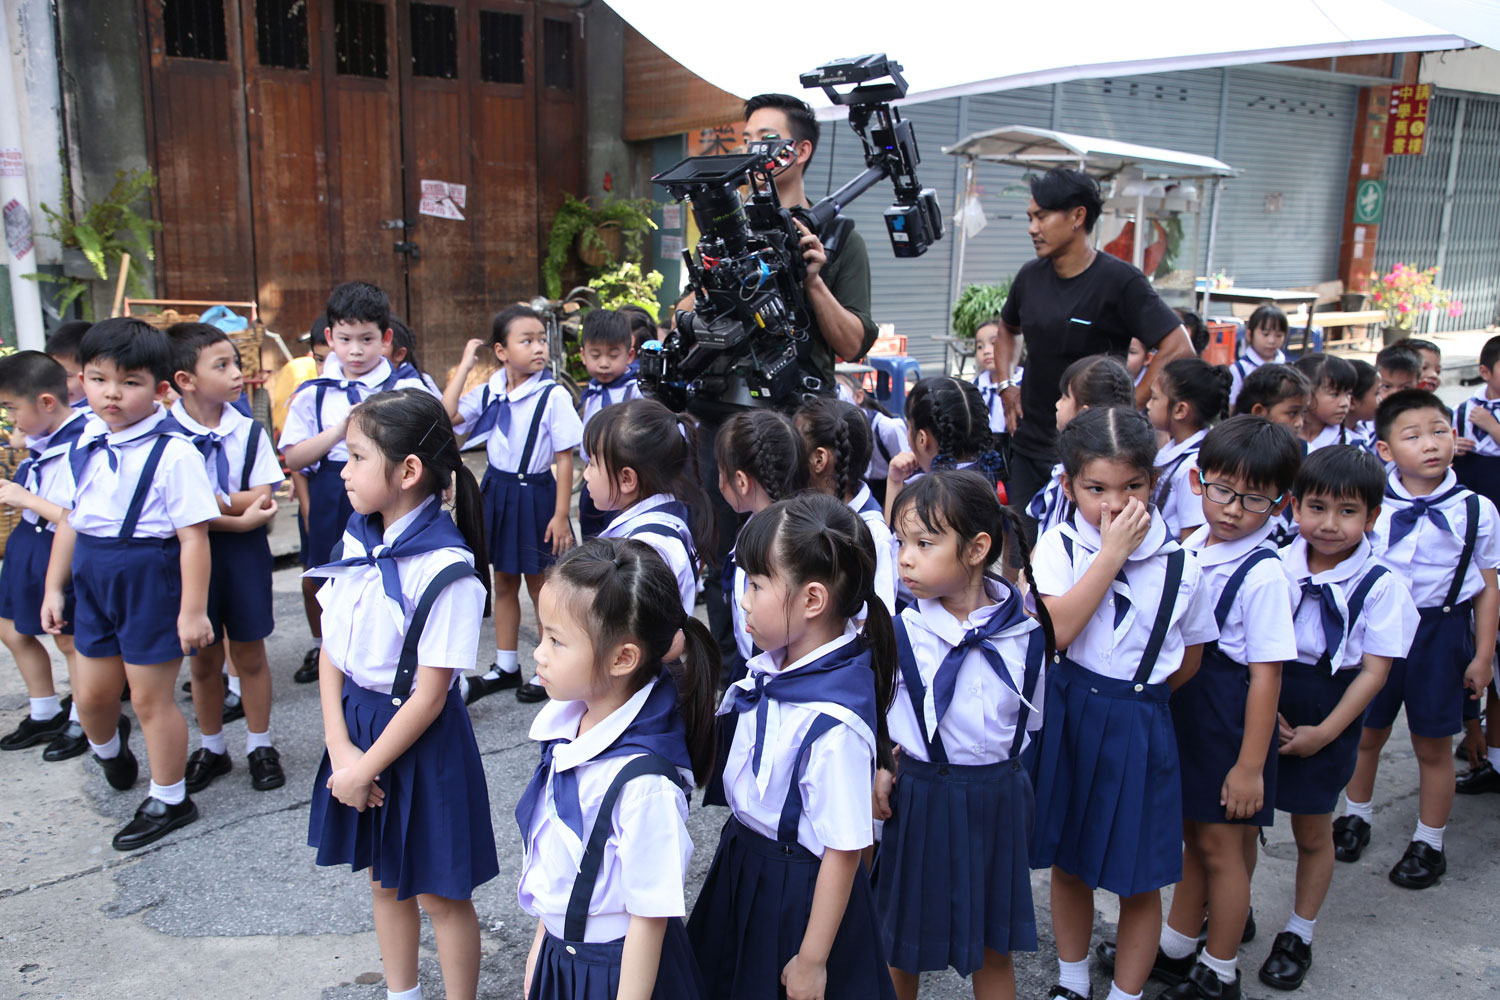 Behind the scenes Samsonite TVC in Thailand, production services by Eastness